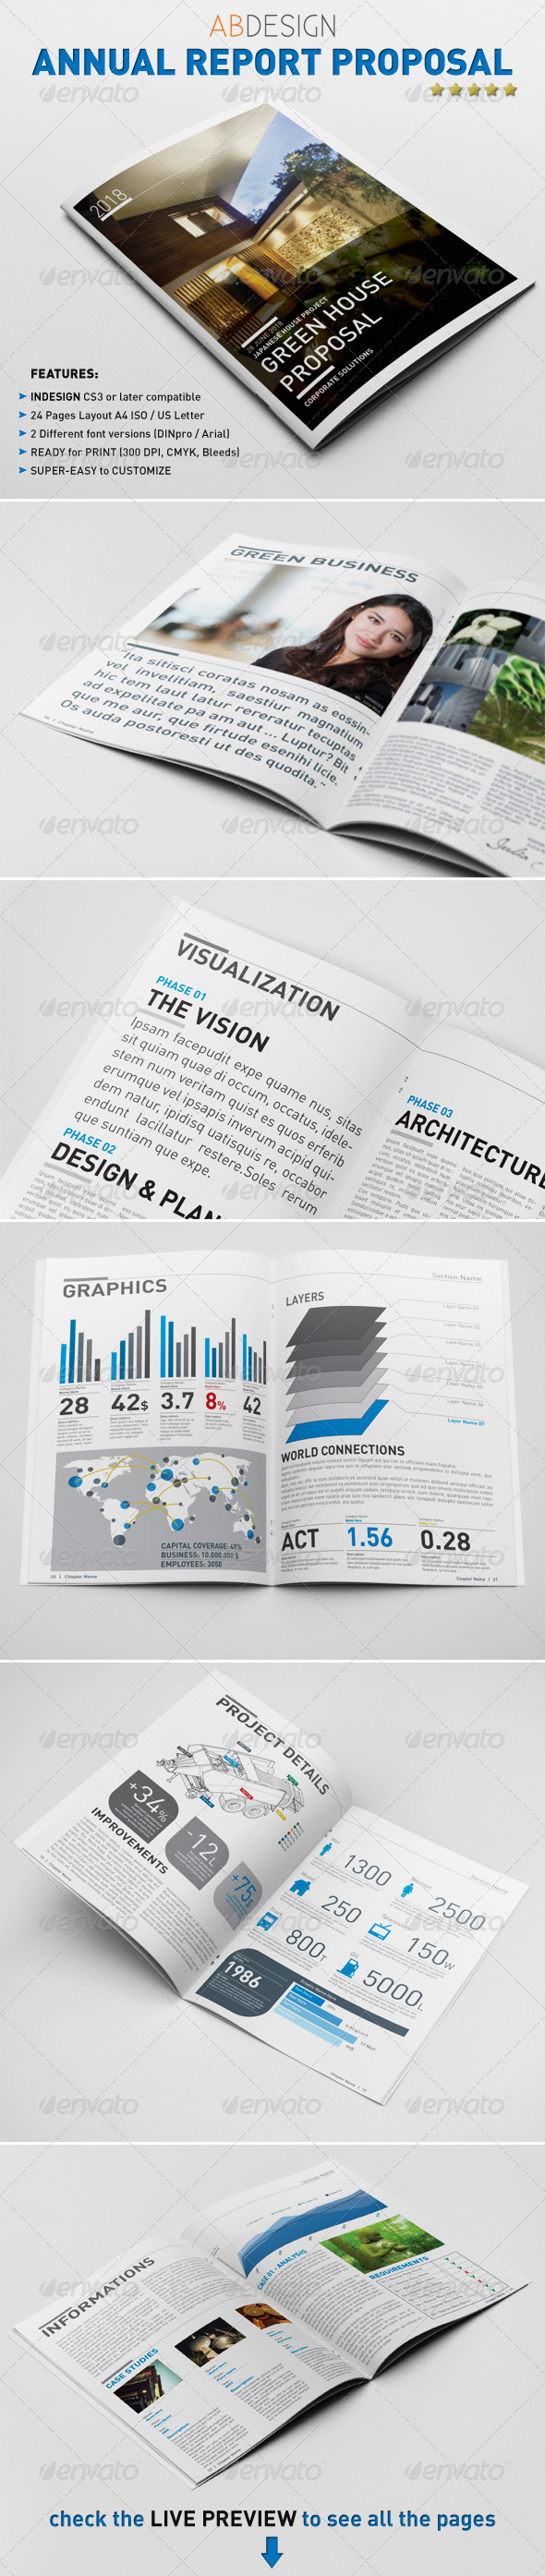 Annual Report Proposal Template - Magazines Print